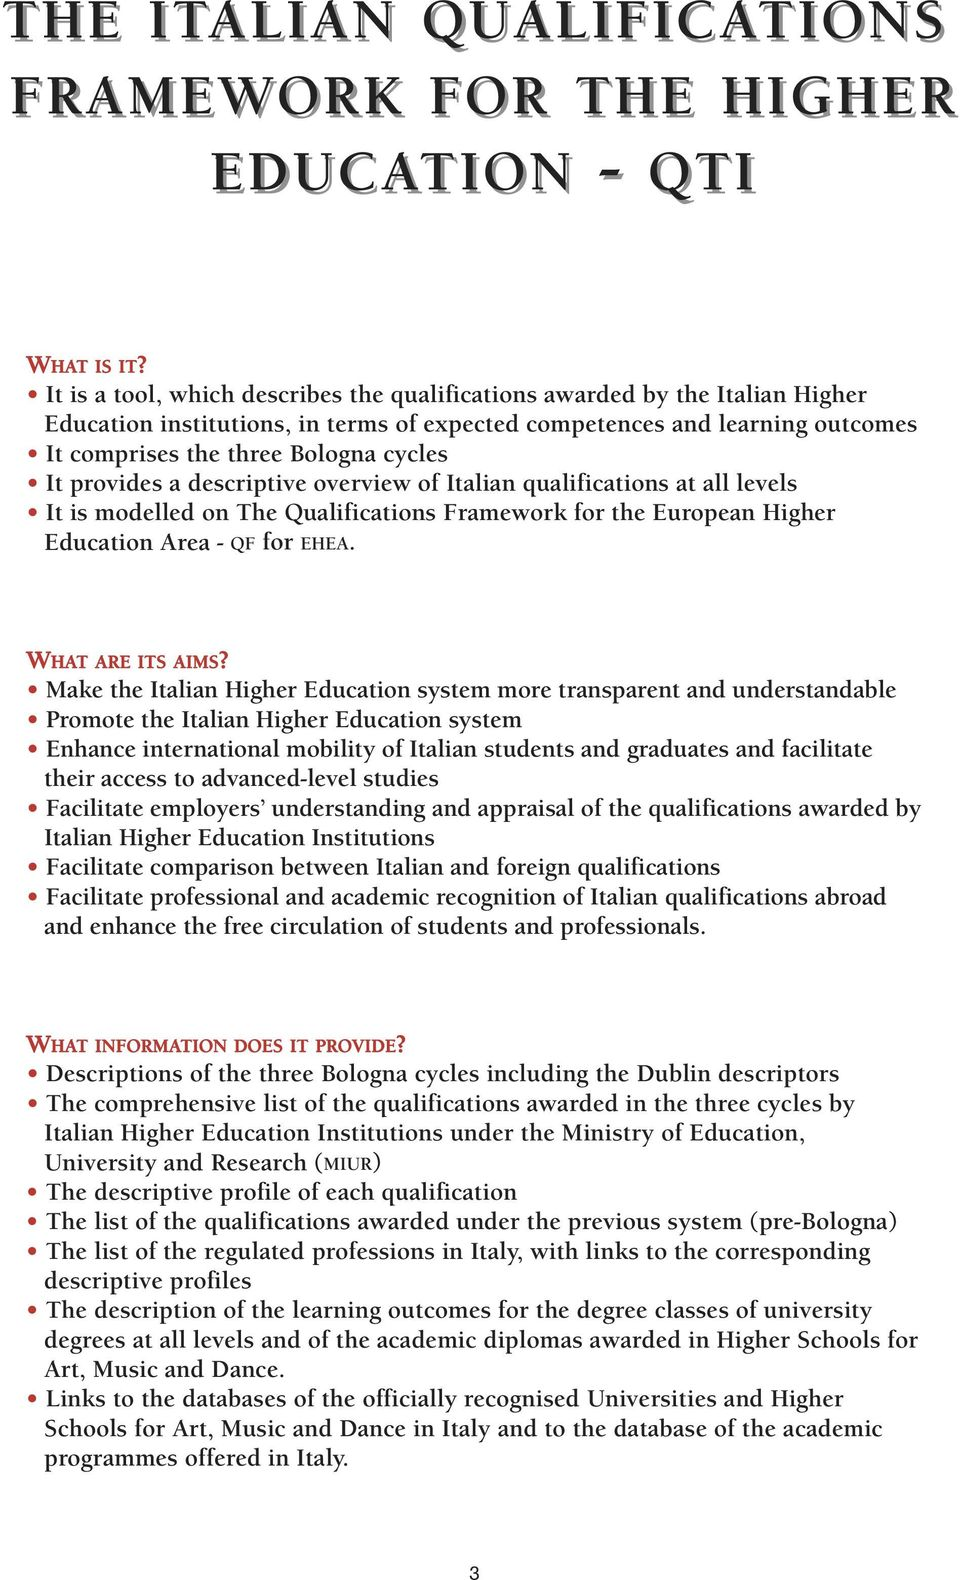 provides a descriptive overview of Italian qualifications at all levels It is modelled on The Qualifications Framework for the European Higher Education Area - QF for EHEA. WHAT ARE ITS AIMS?